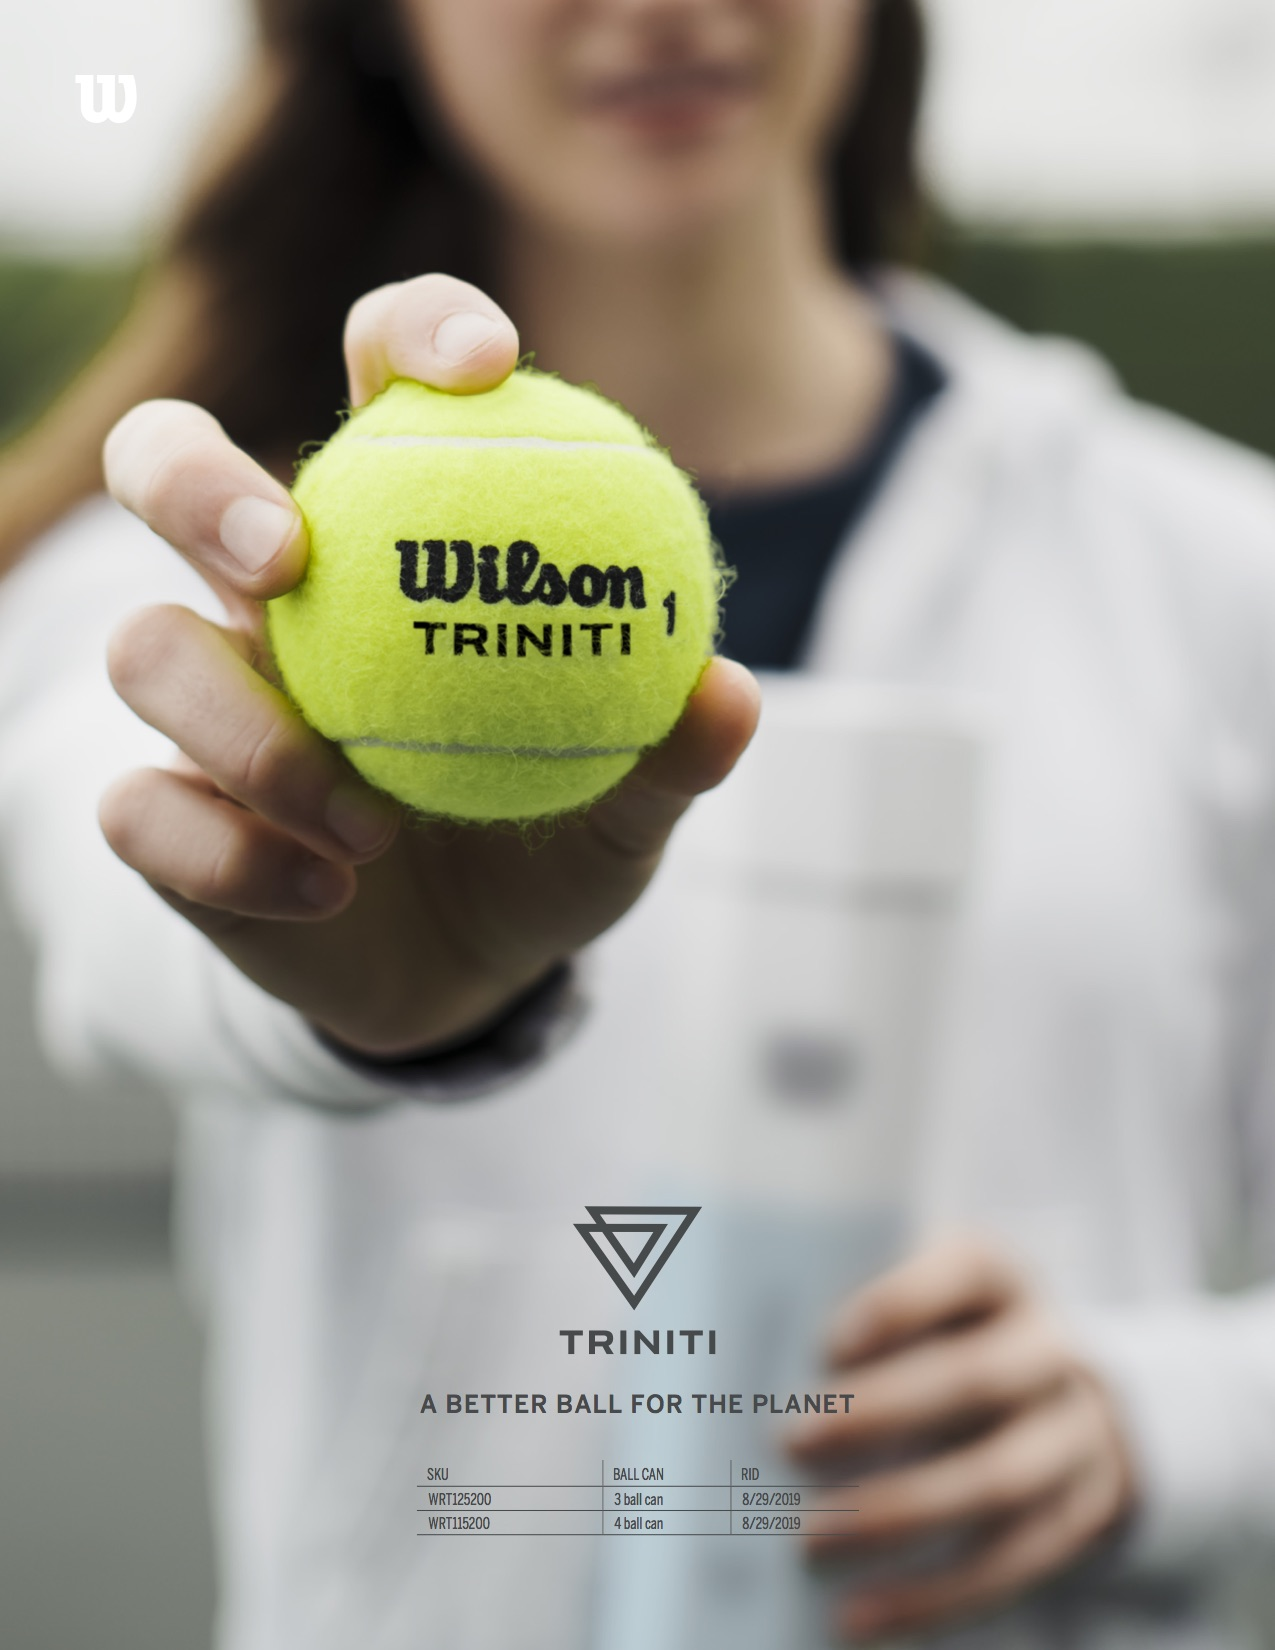 Sell Sheet for a new Wilson tennis ball. Photography by Nicole Gazzano, Product Logo done by me.